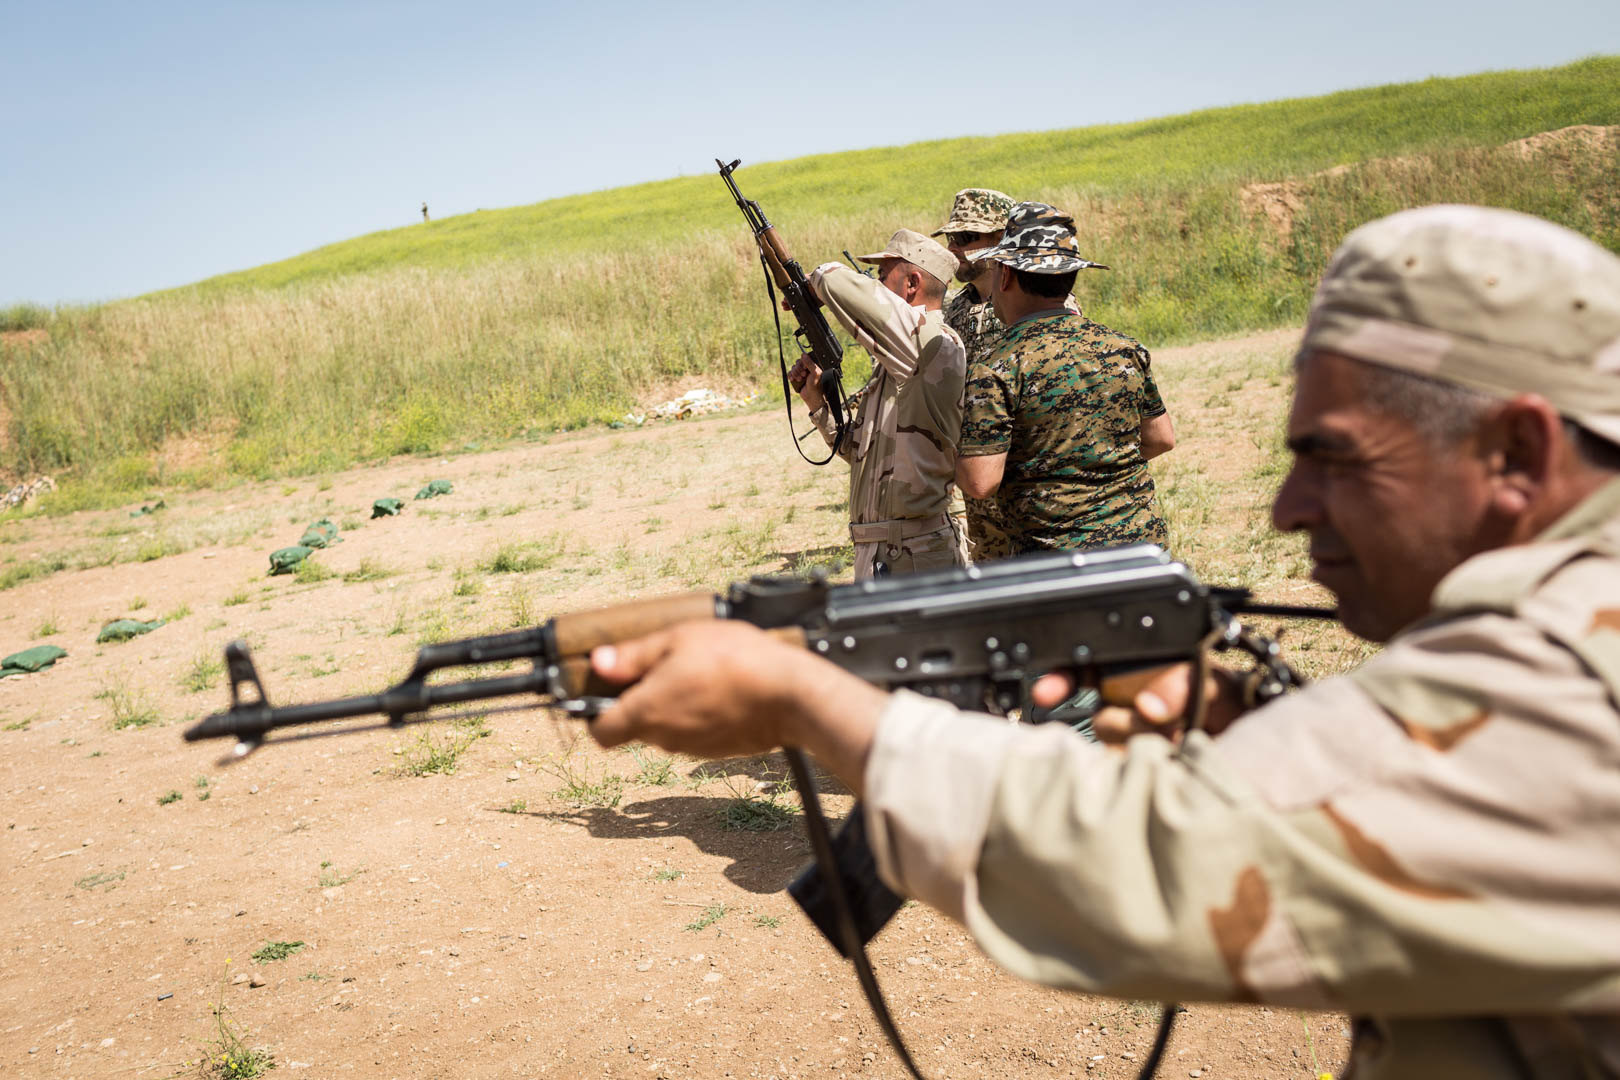 German military advisers train Peshmerga forces at the shooting range.